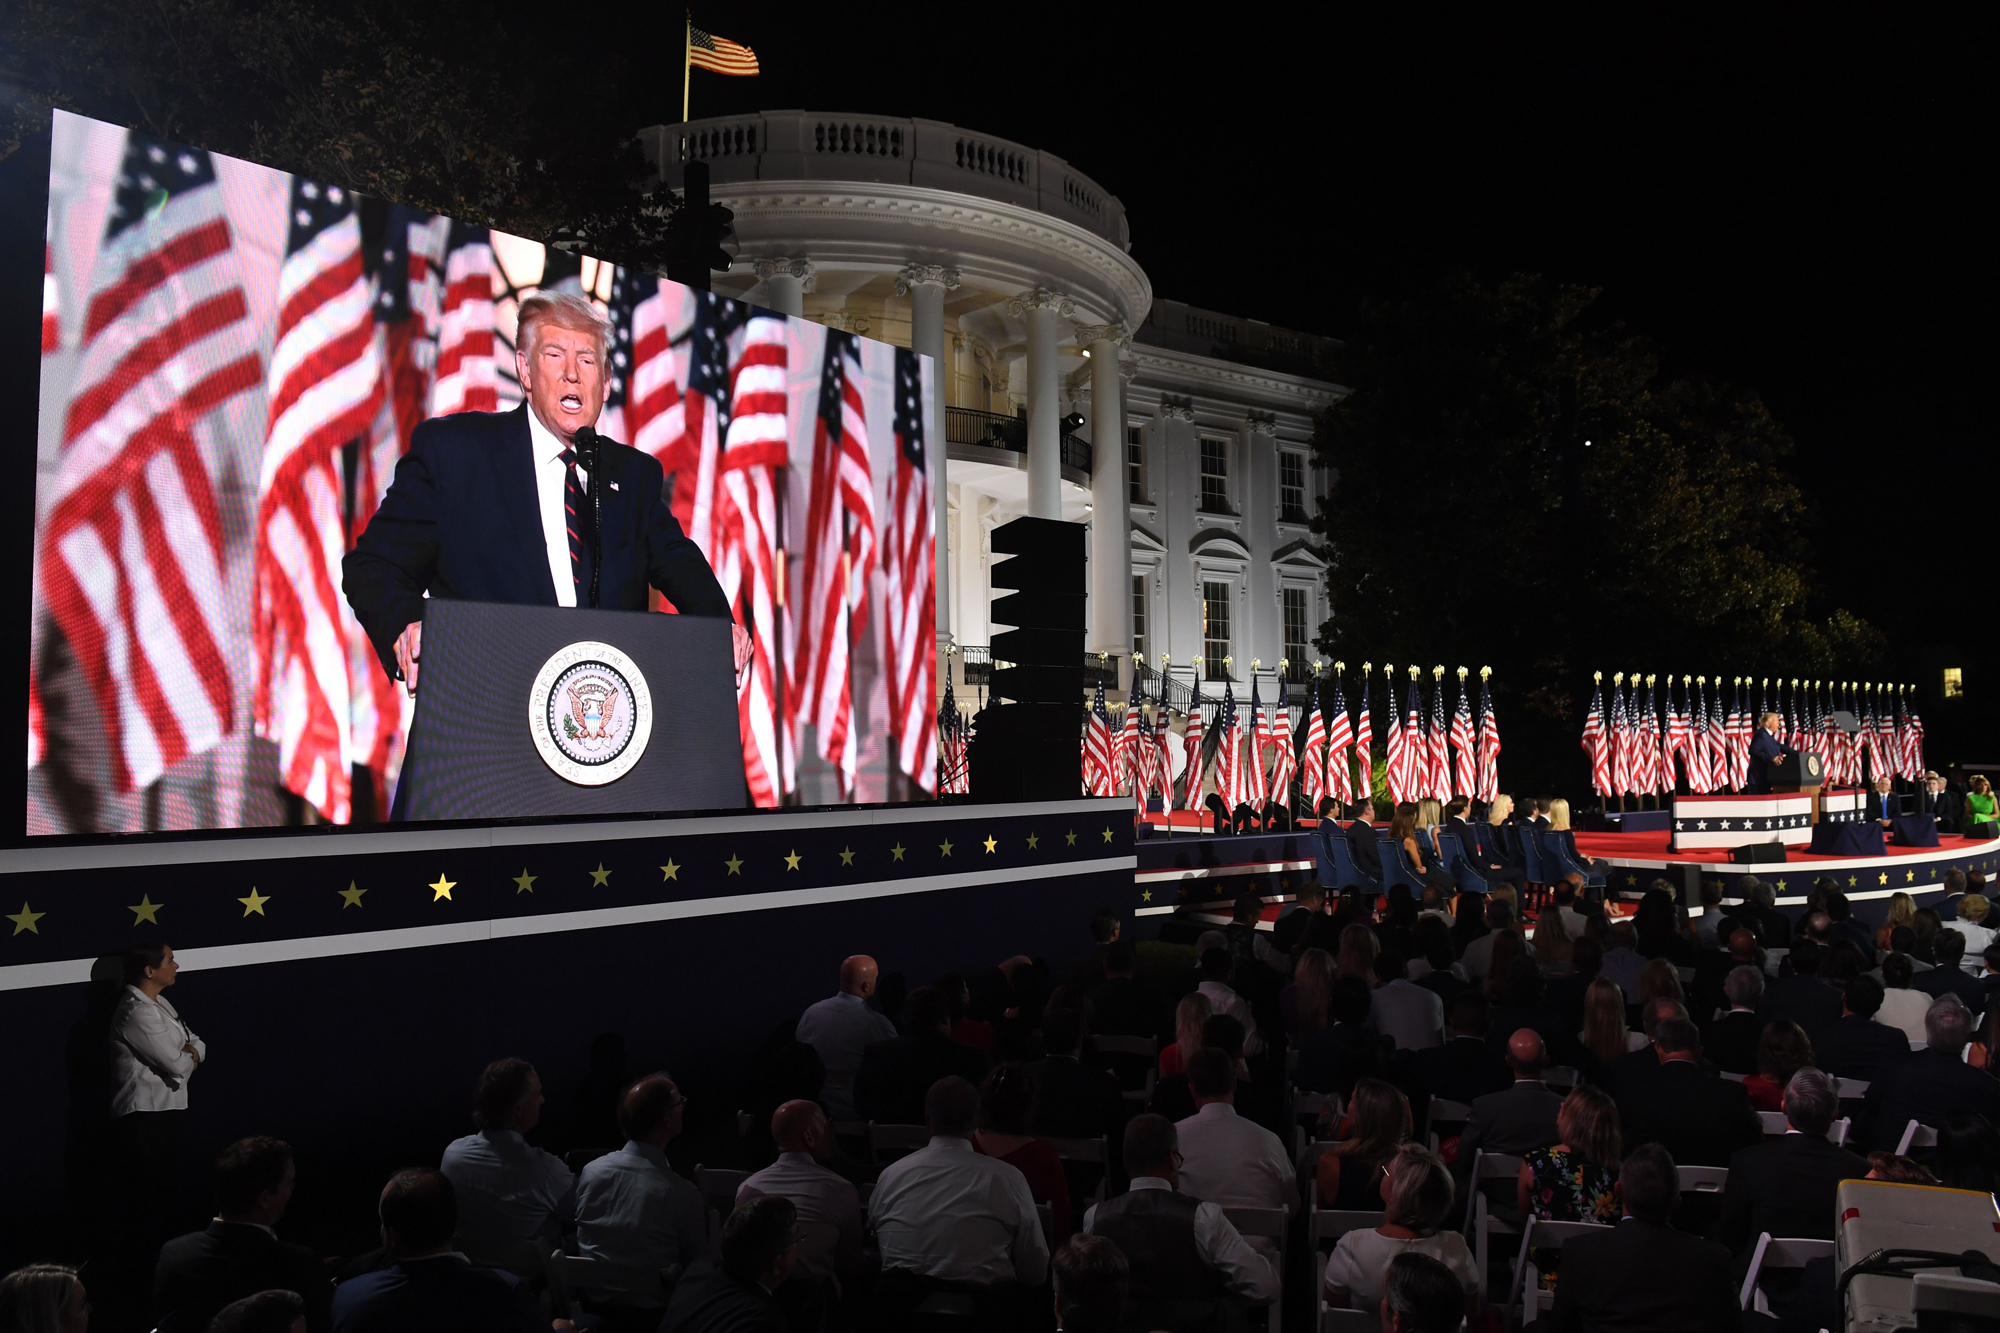 Trump accepted the 2020 Republican presidential nomination on the grounds of the White House. (Saul Loeb/AFP/Getty Images)